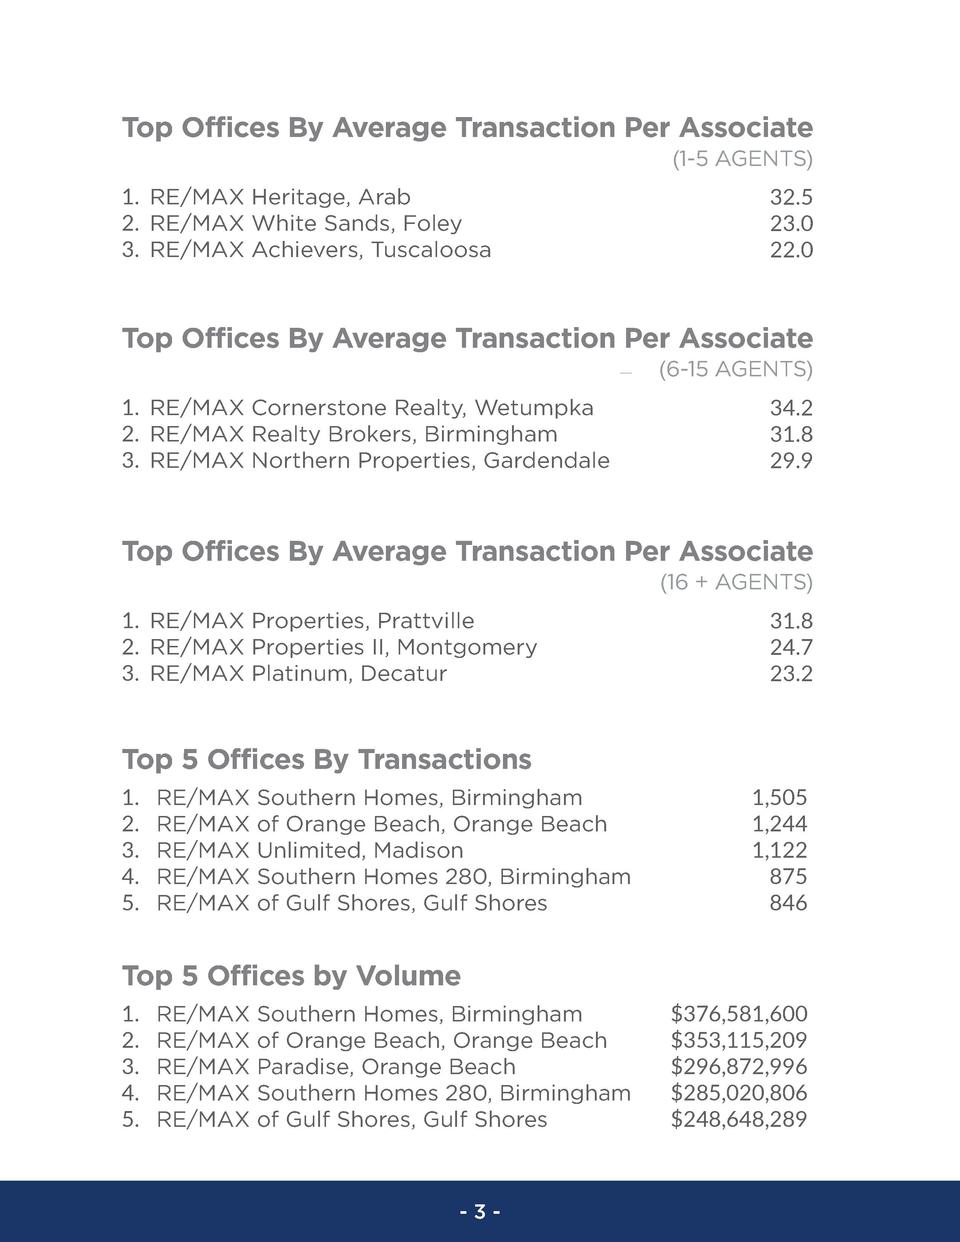 Top Offices By Average Transaction Per Associate  1-5 AGENTS  1. RE MAX Heritage, Arab 2. RE MAX White Sands, Foley 3. RE ...